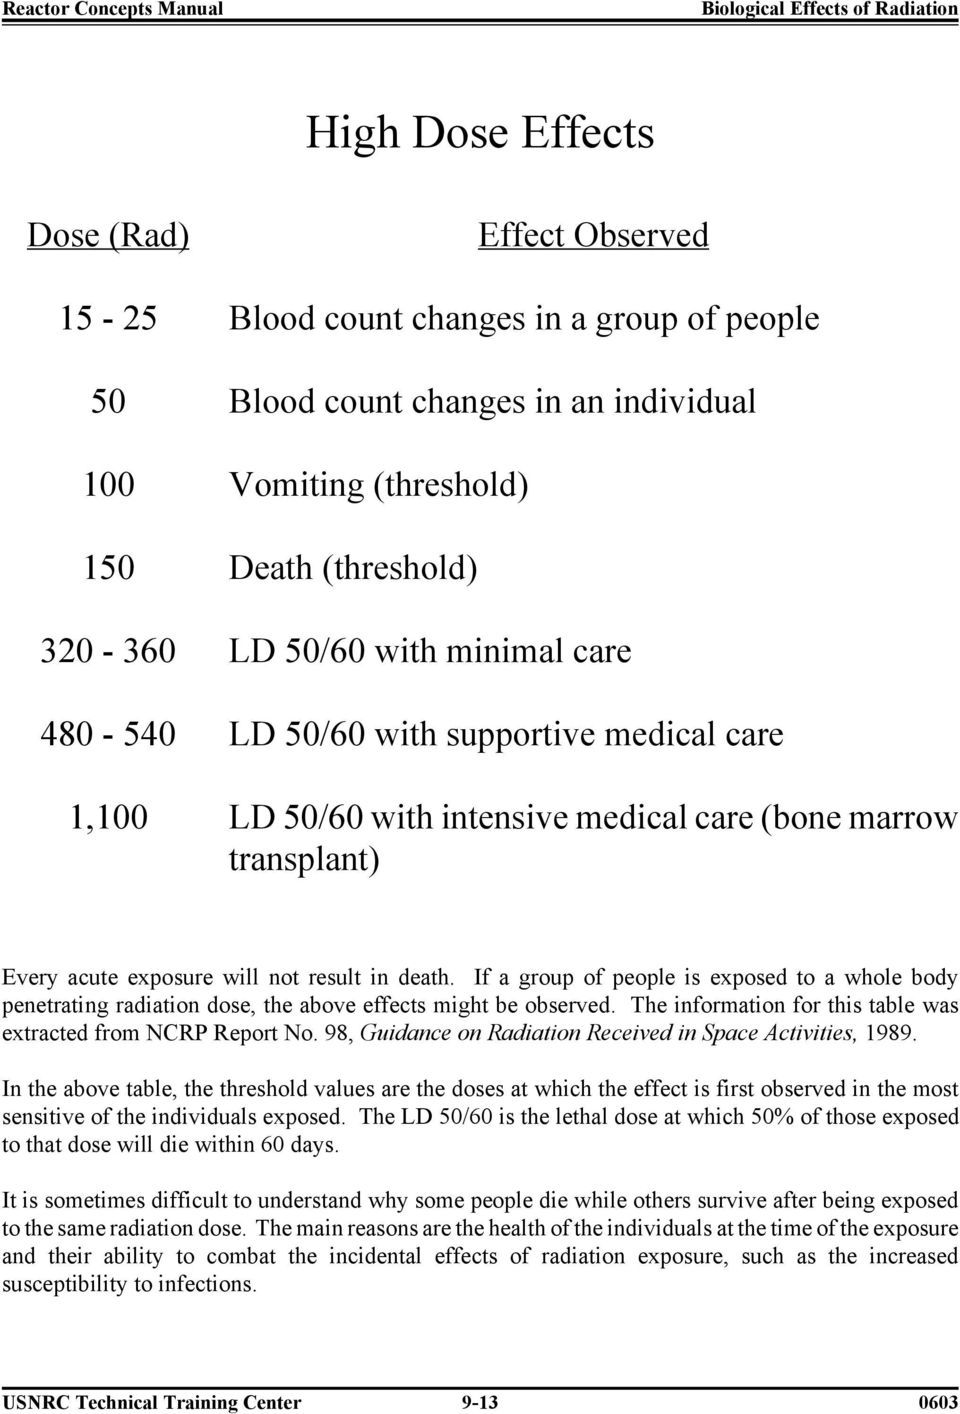 If a group of people is exposed to a whole body penetrating radiation dose, the above effects might be observed. The information for this table was extracted from NCRP Report No.